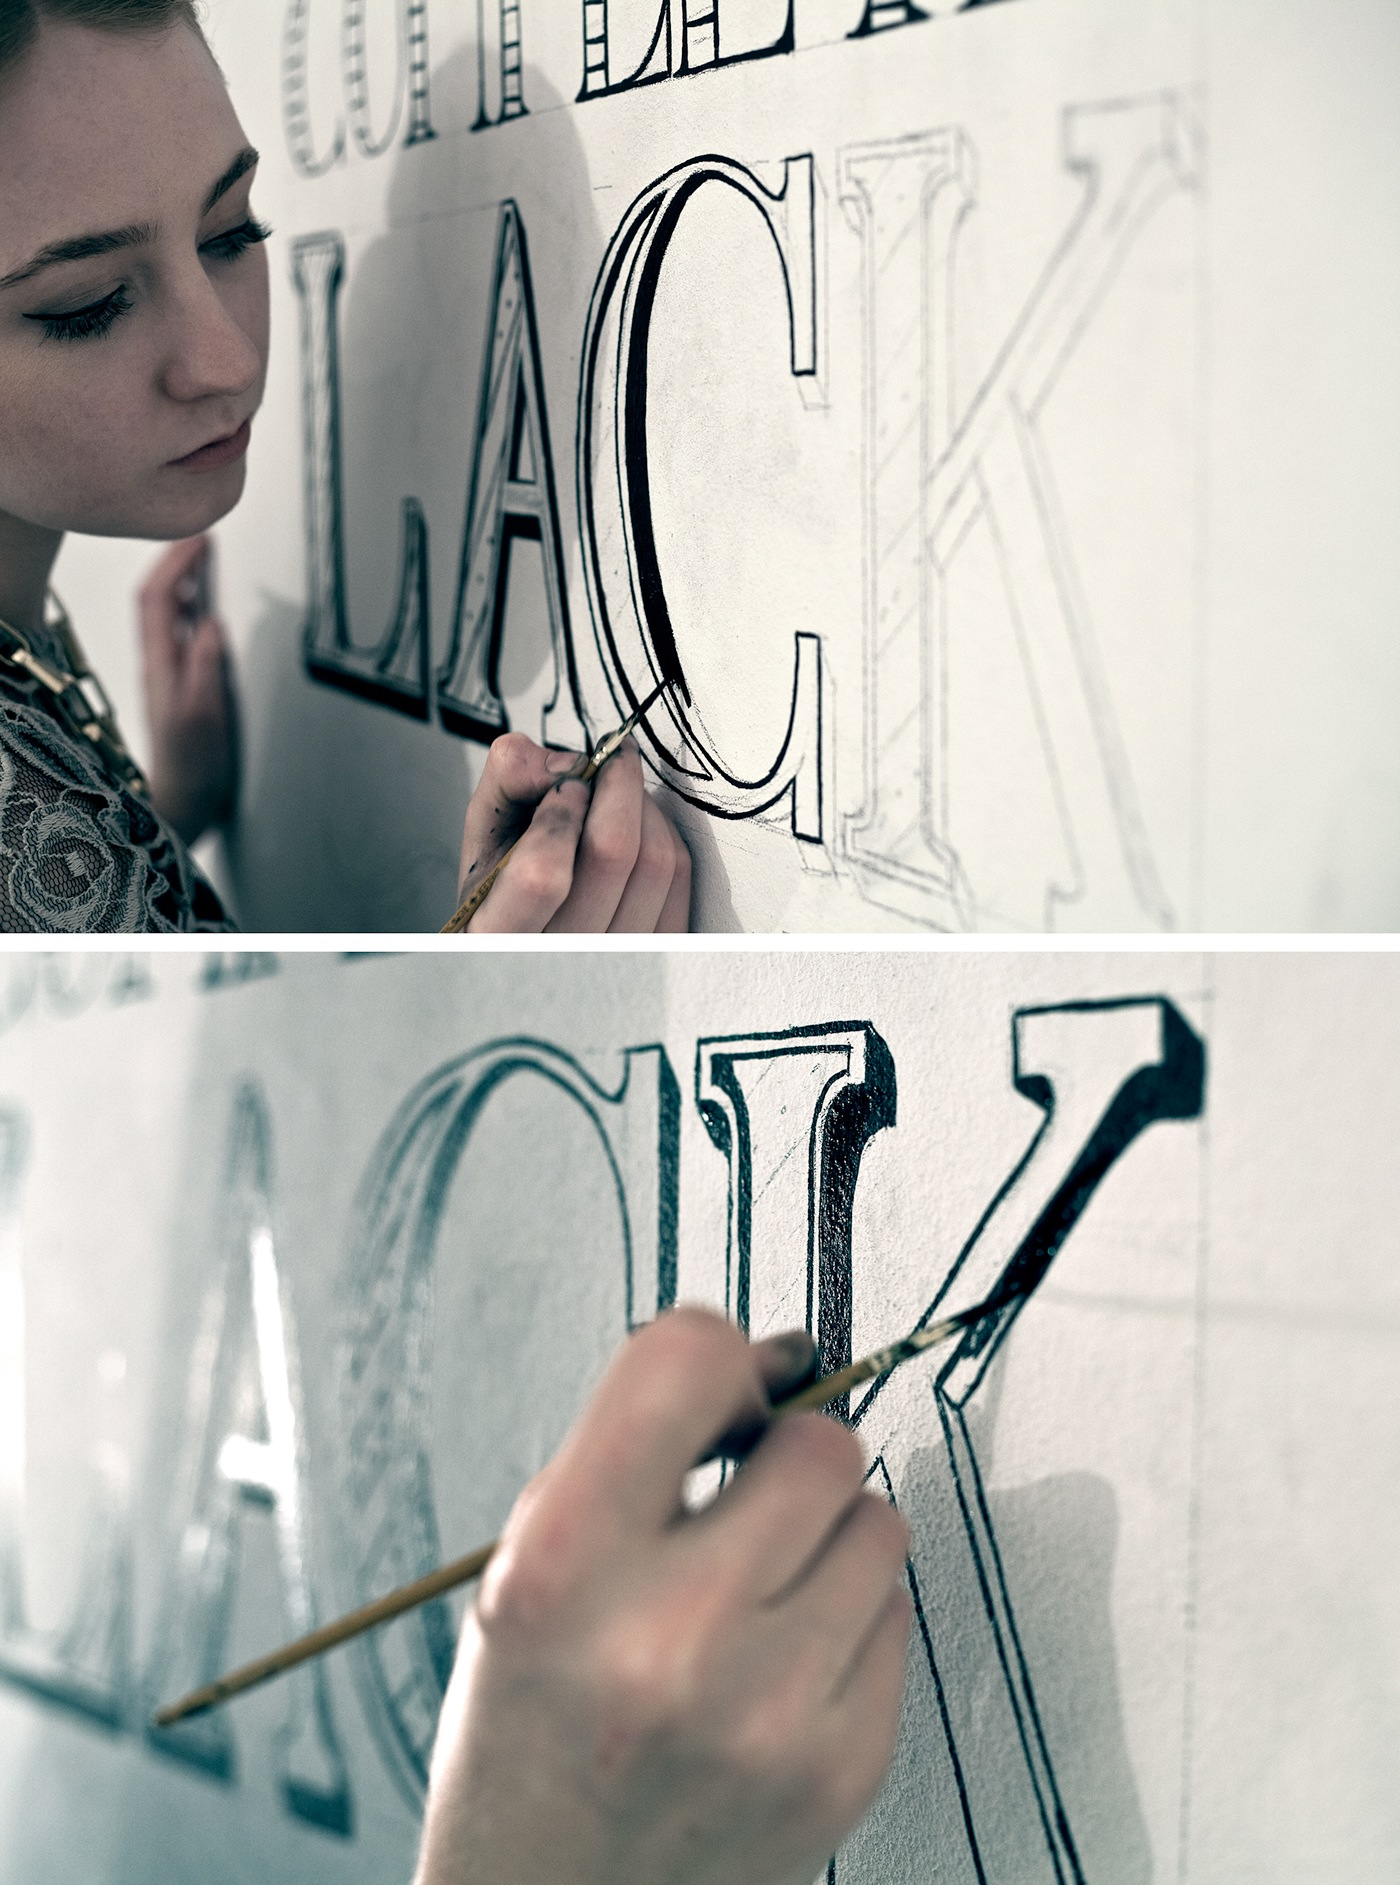 Typography - Timelapse video